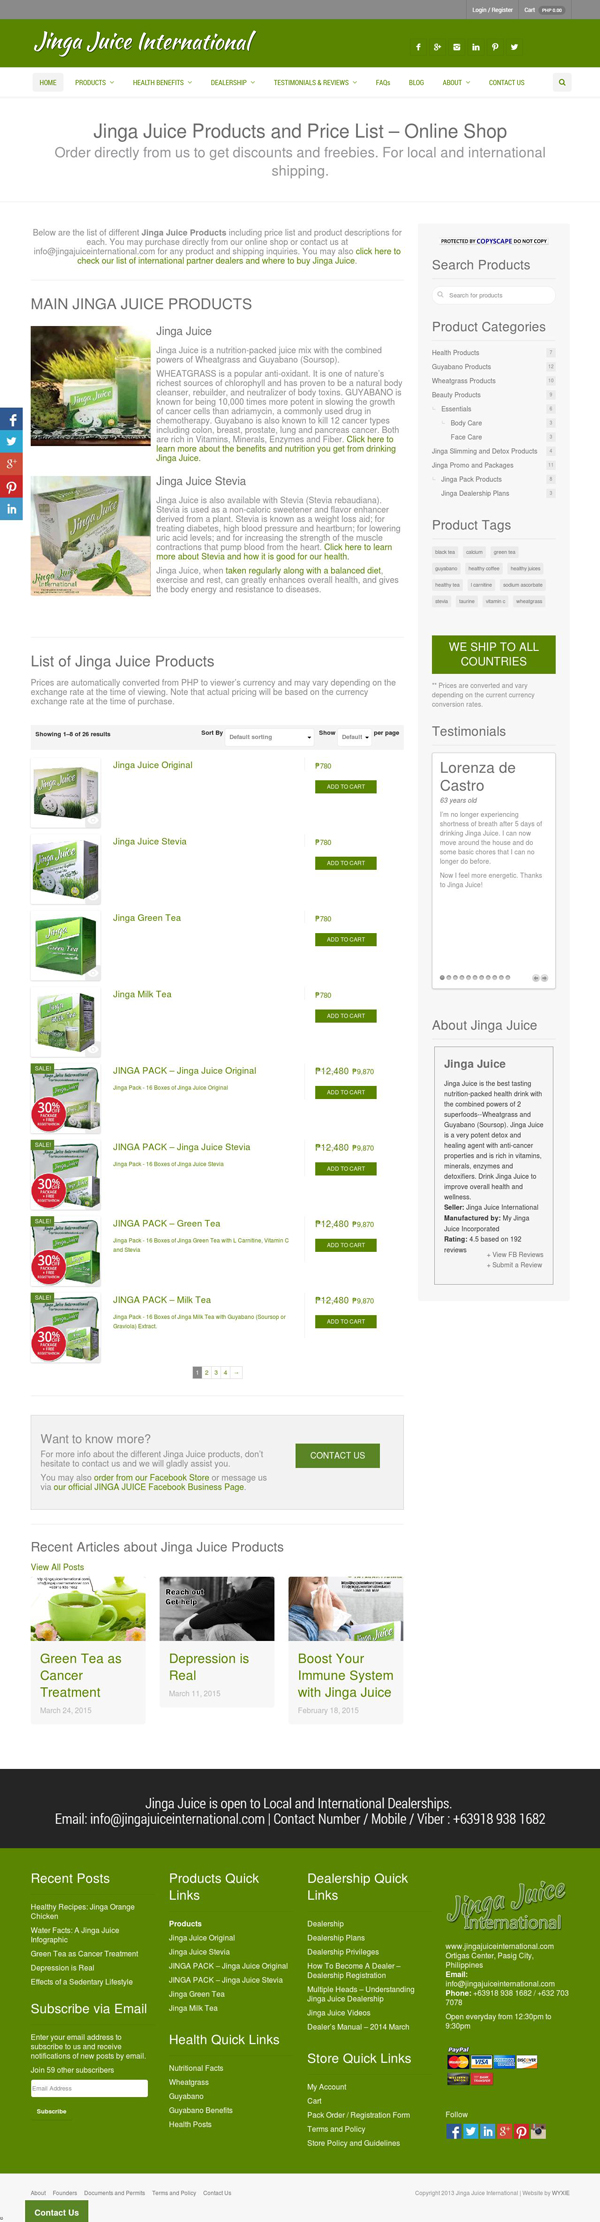 Jinga Juice International Shop Page